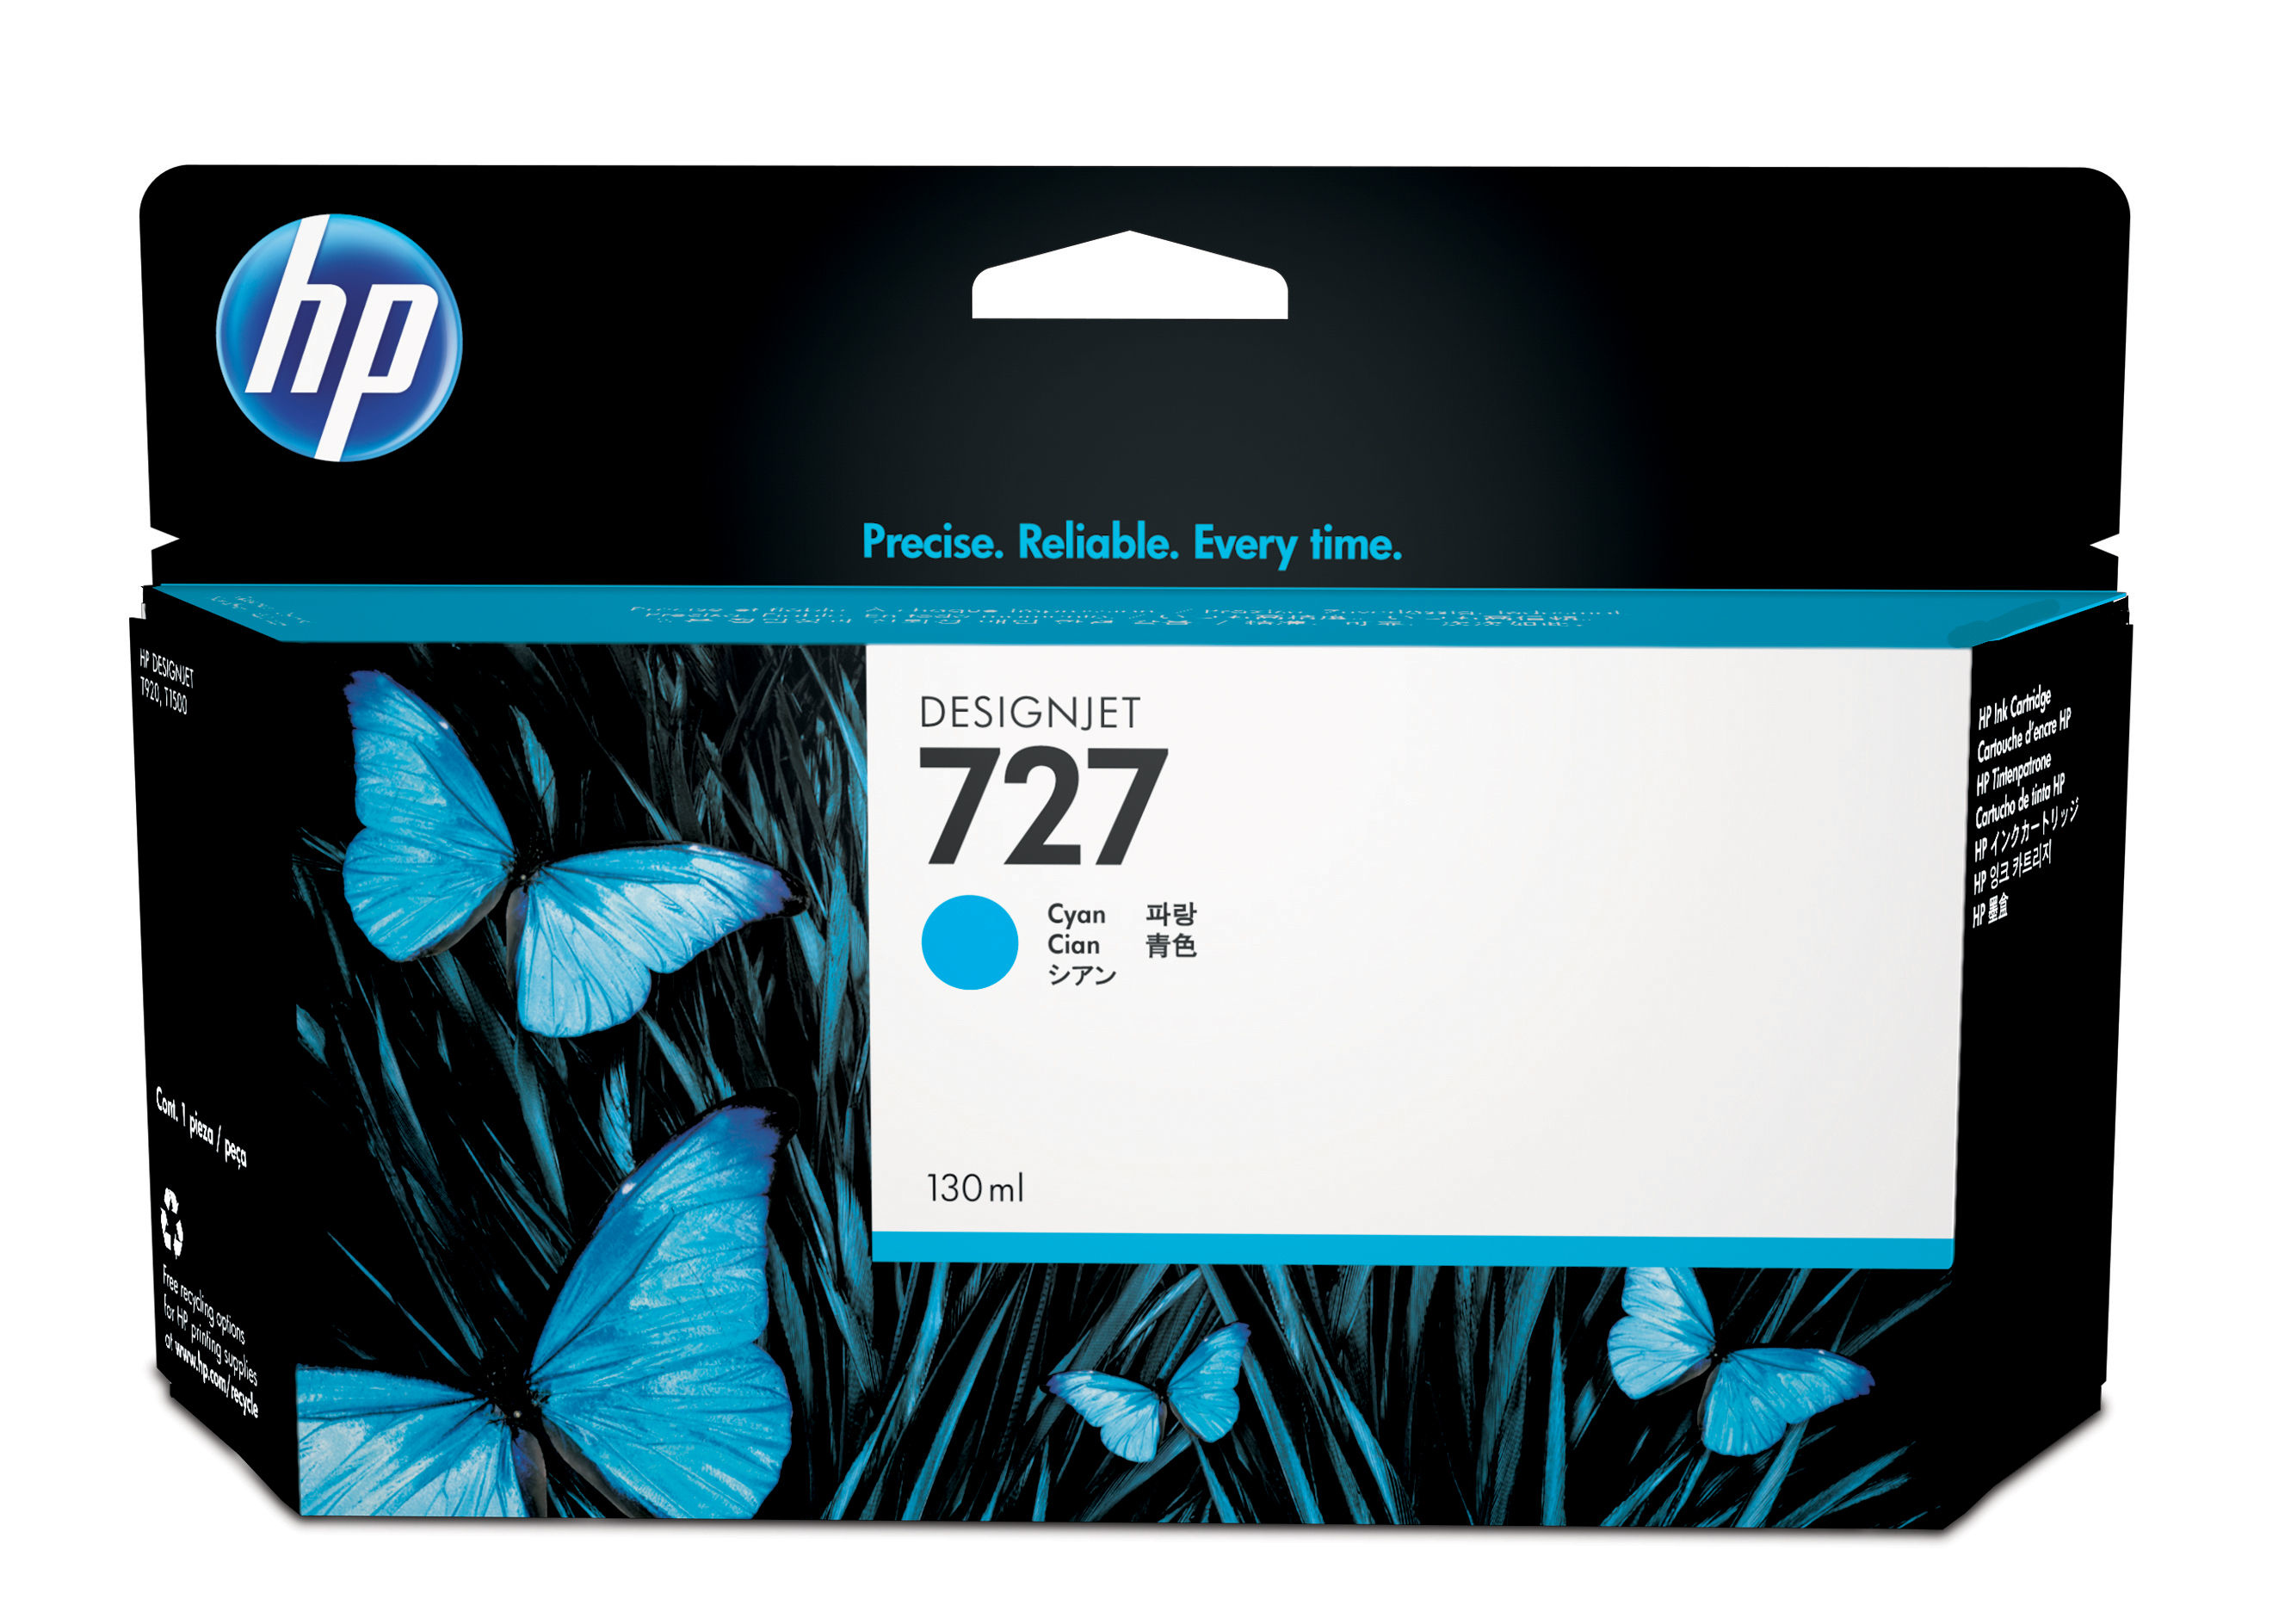 Hp - Inkjet Lf Design Supp (pl U Ink Cartridge Hp 727                130-ml Cyan                         B3p19a